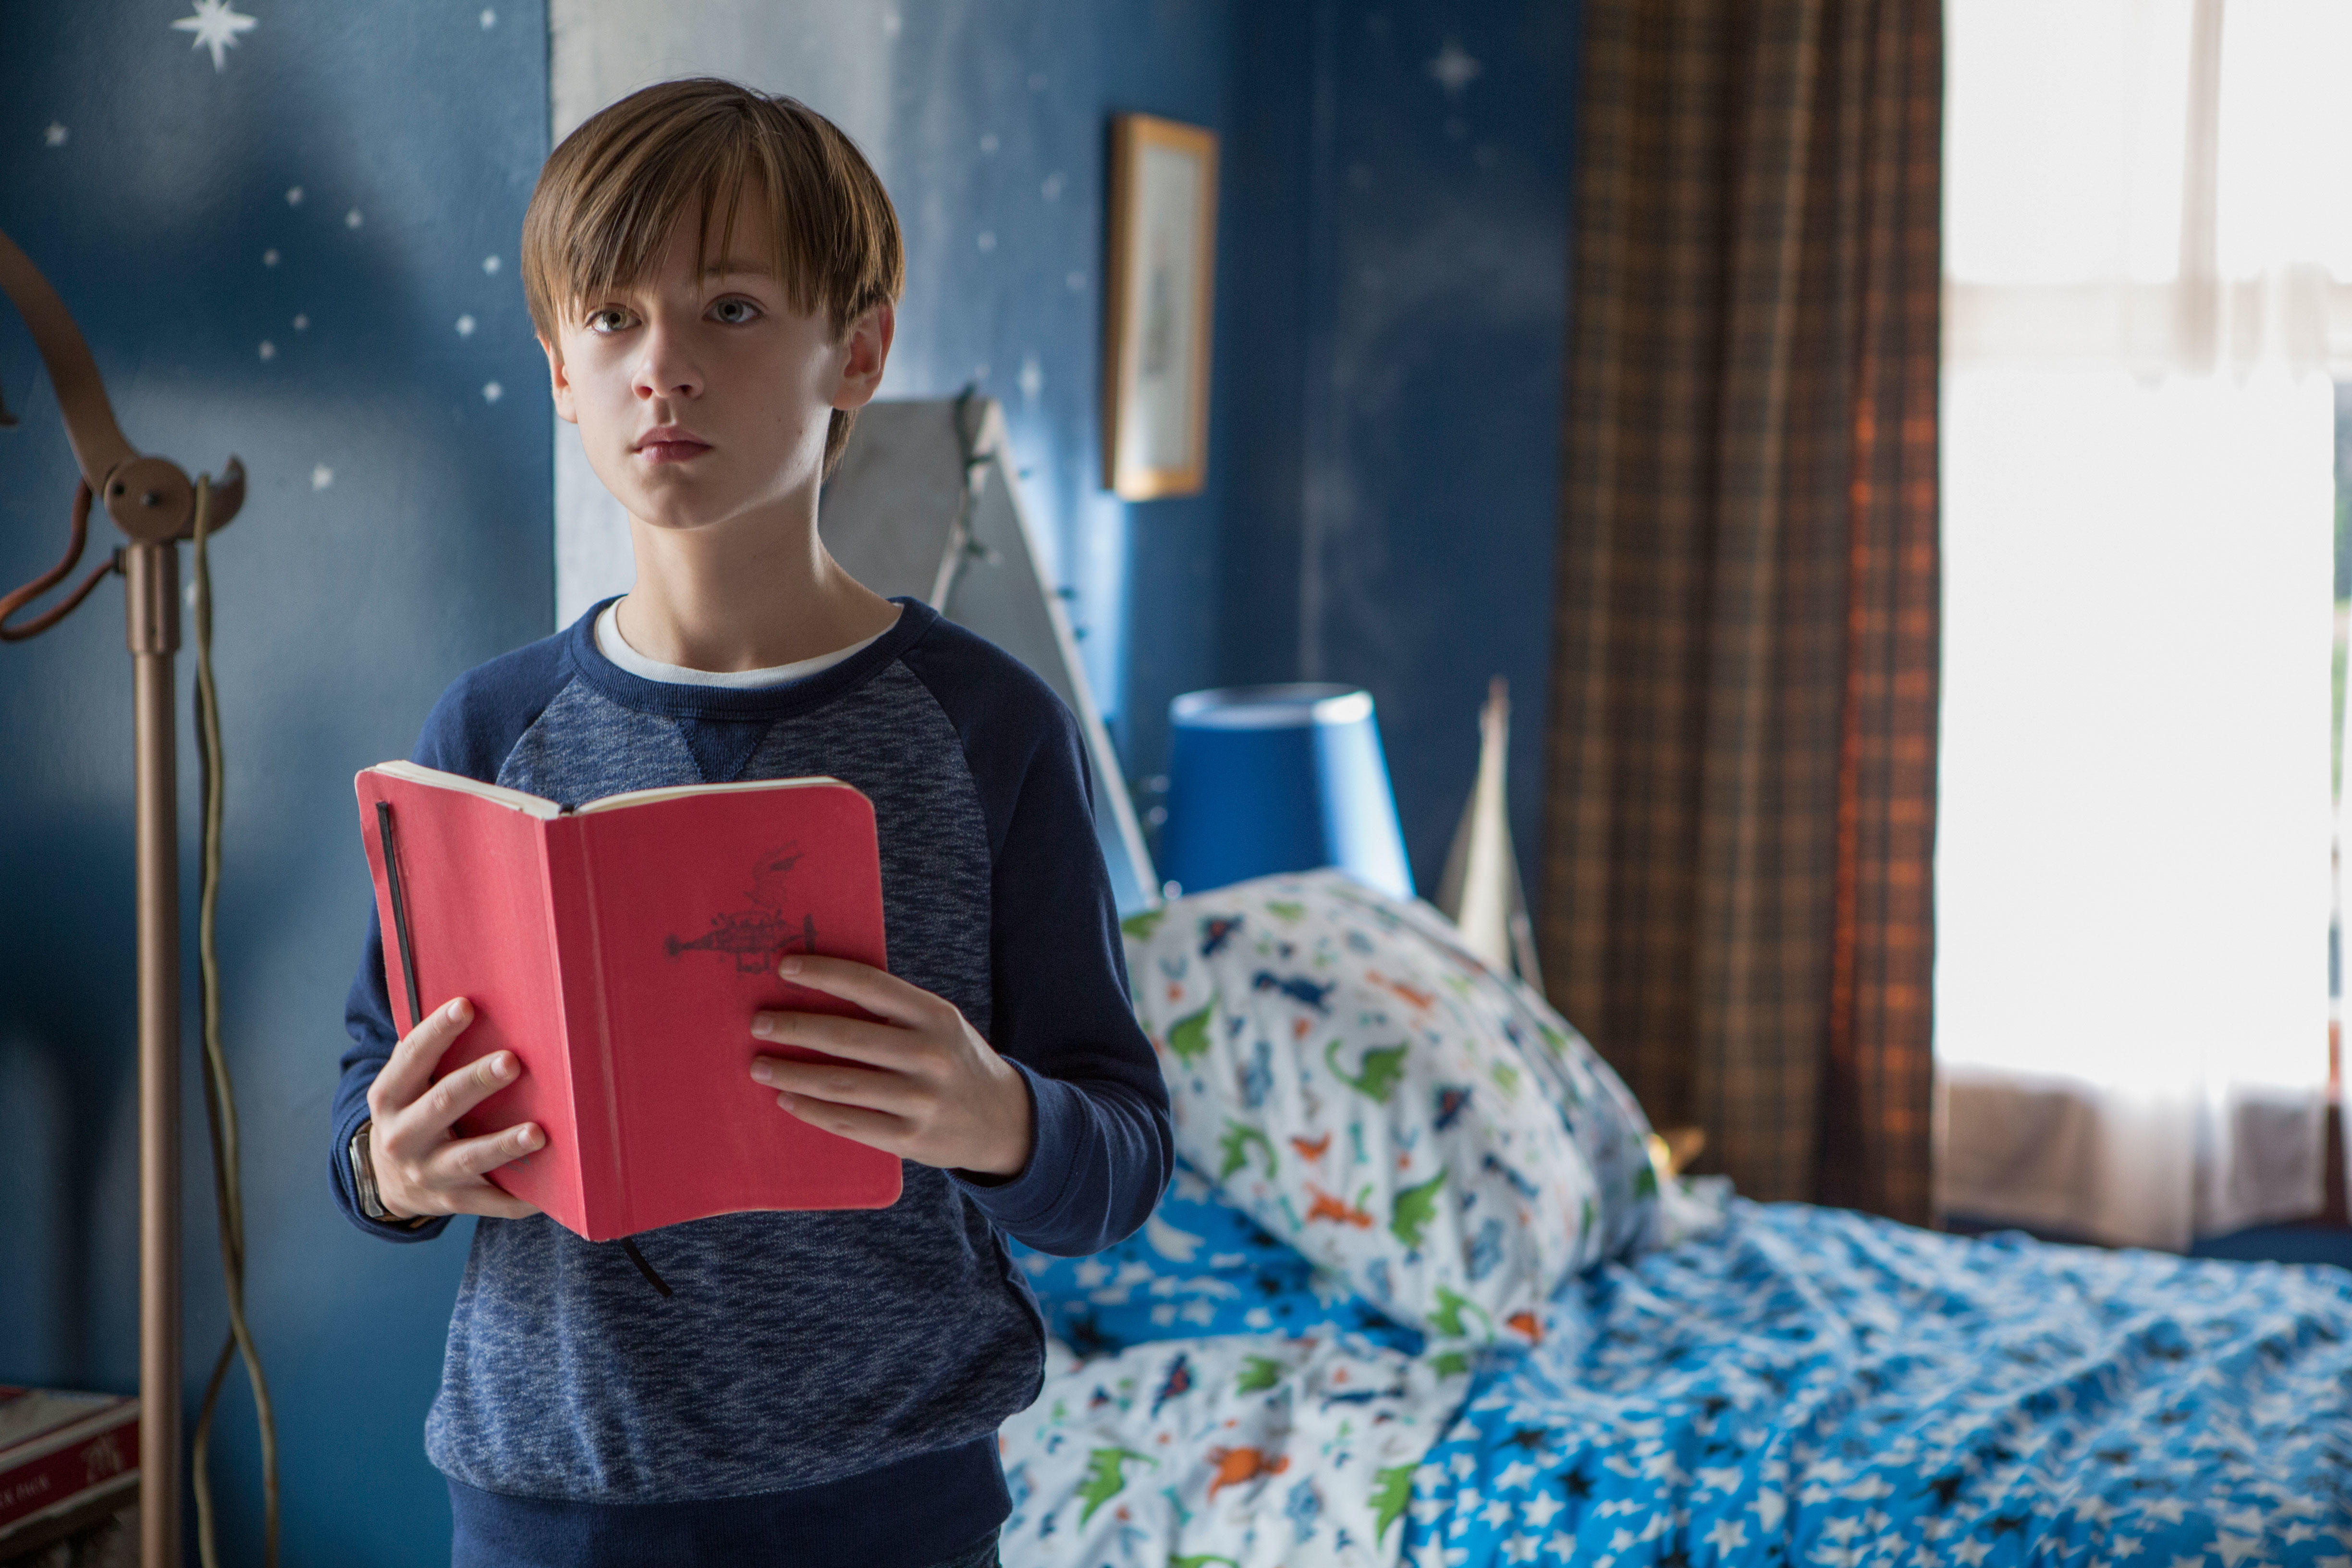 Check out the movie photos of 'The Book of Henry'